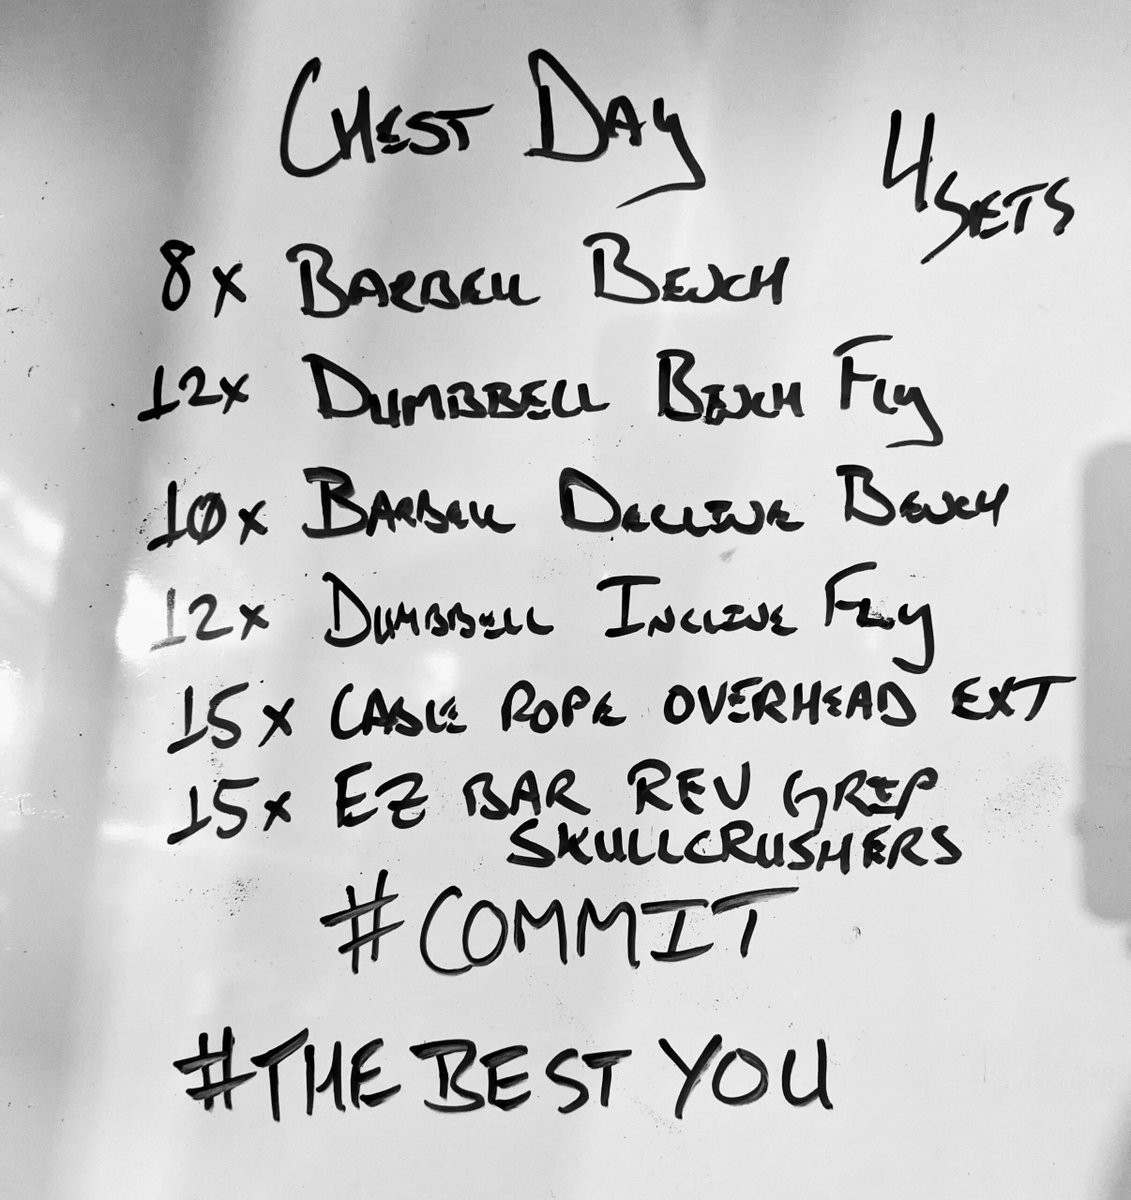 It's Monday which means it's International Chest Day.  No, it's not like a national holiday, but when the gyms were open across the states sure felt like it.  #Bands #Barbell #Dumbbell #Exercise #FranklinFitnet #LosingWeight #Strength #WeightTraining #Work https://t.co/sYyAswoo8j https://t.co/AizJ5WOTe7